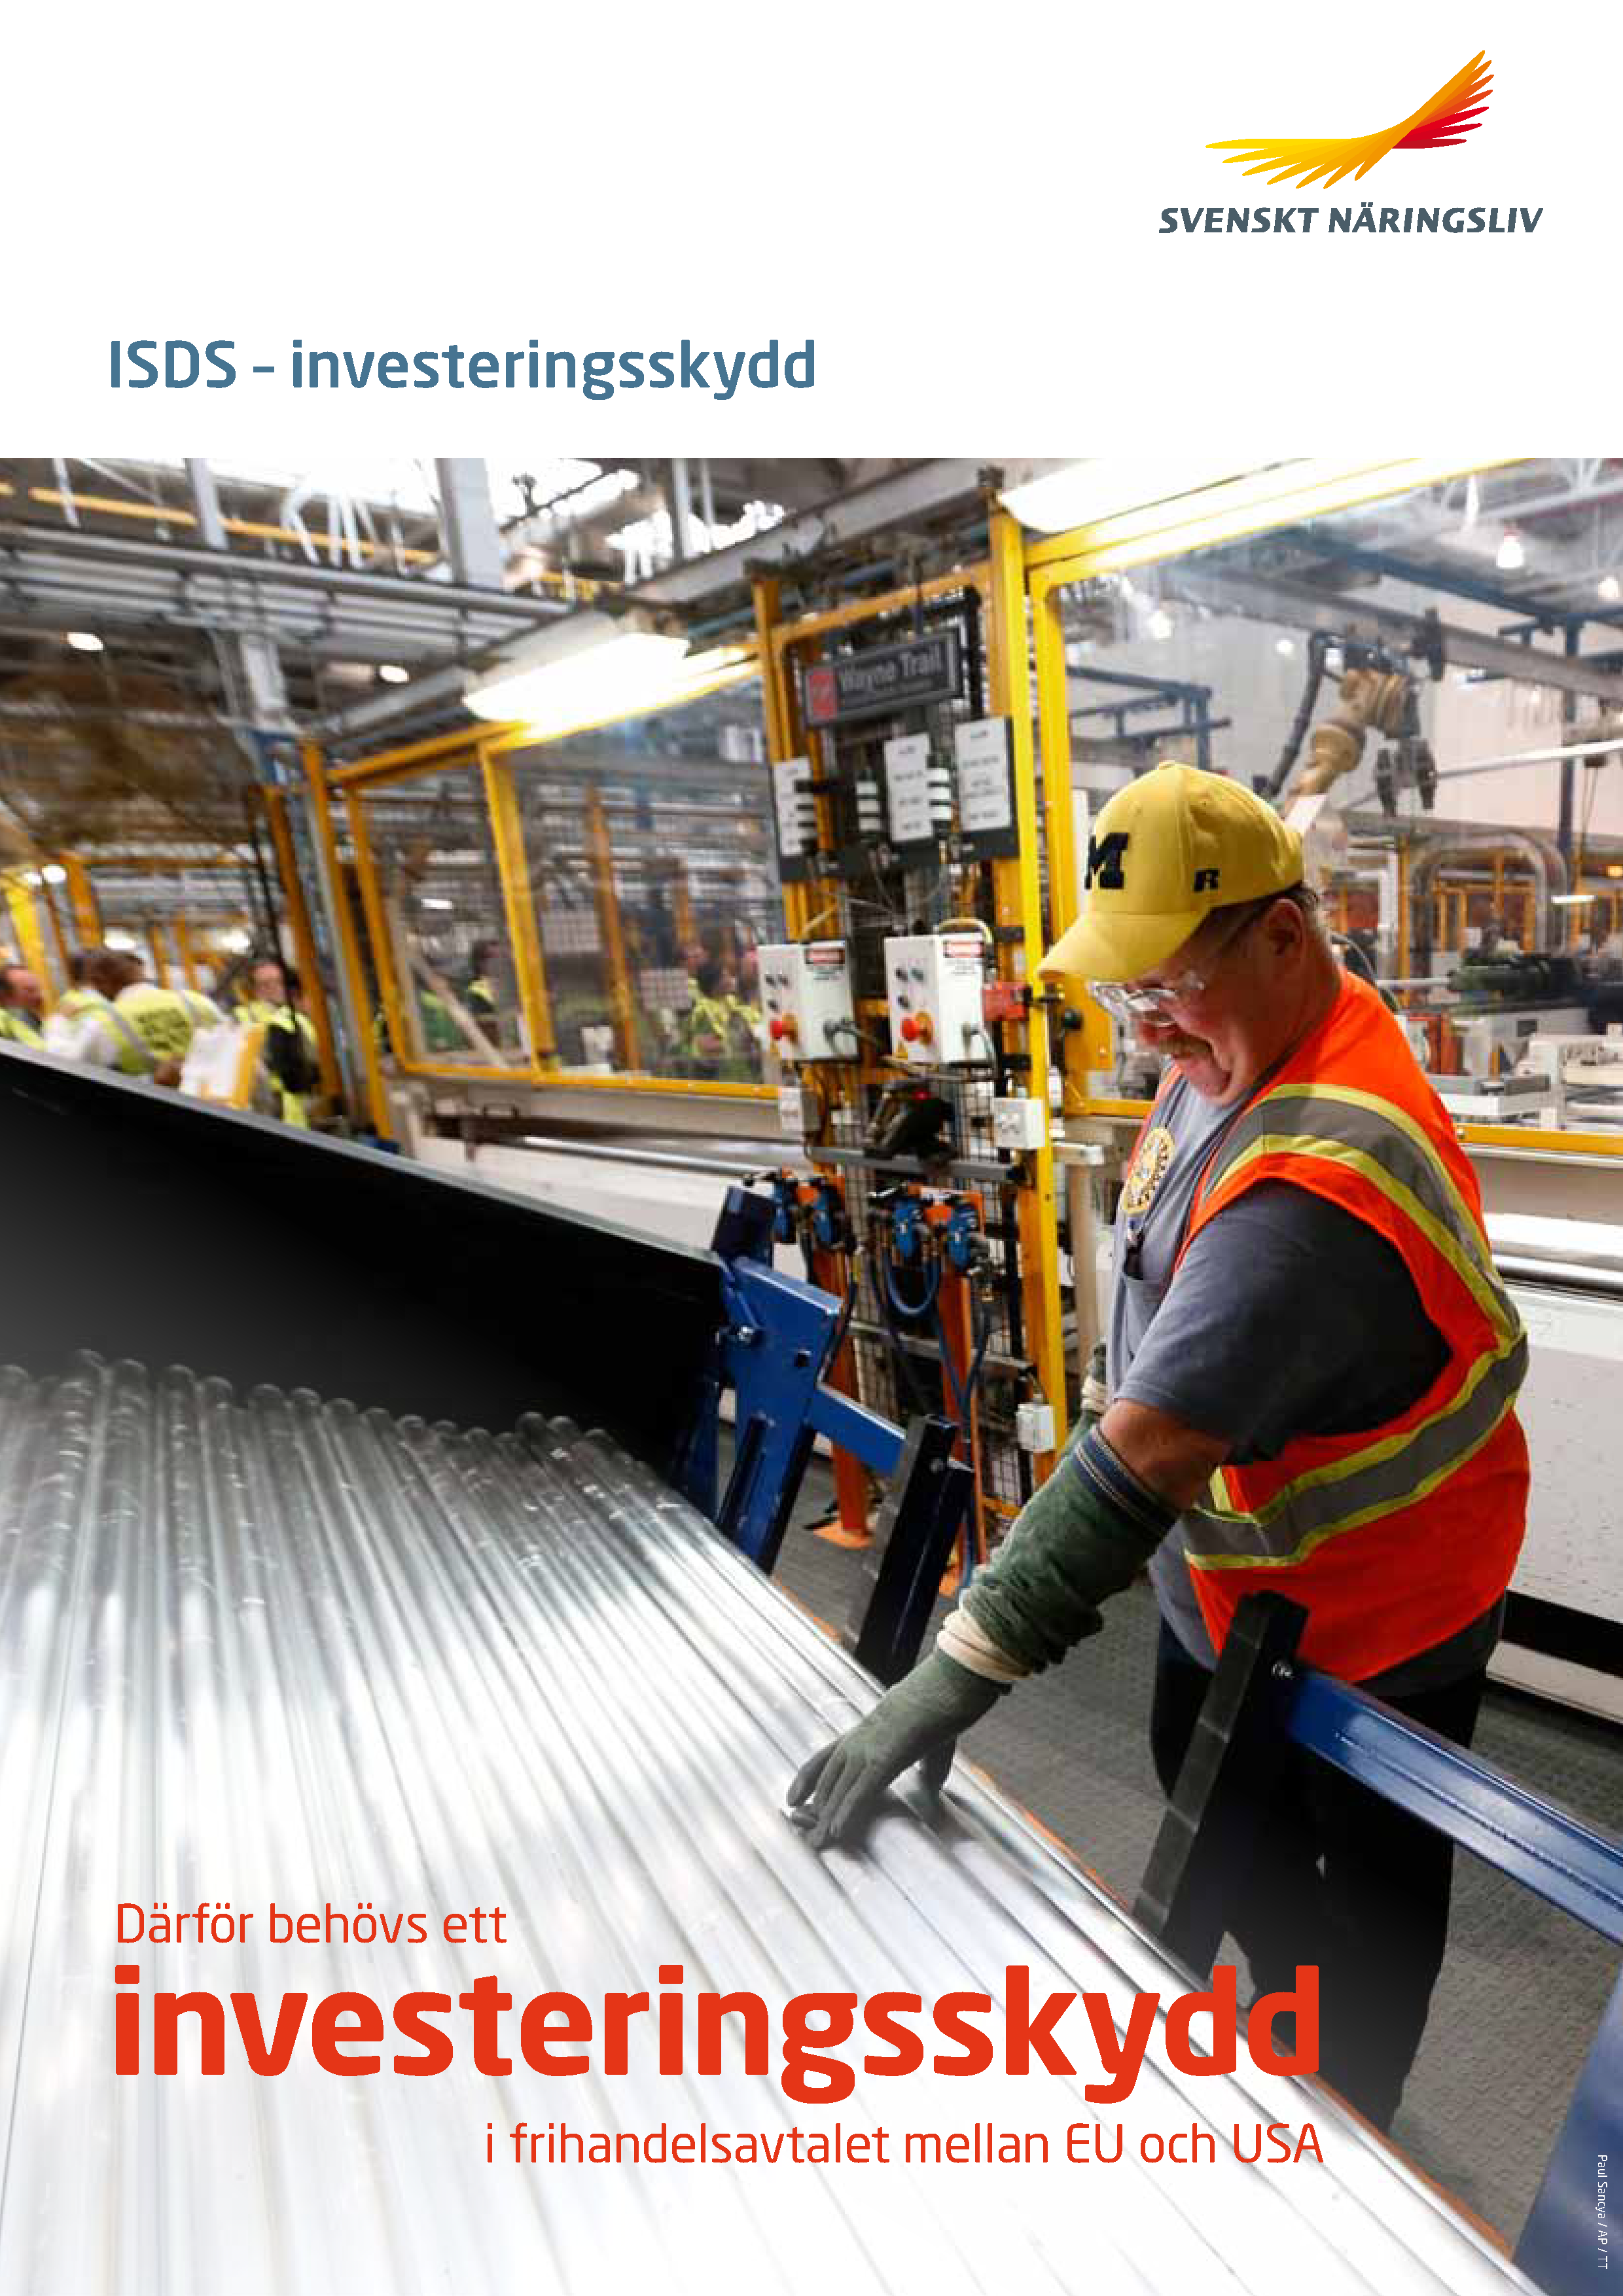 ISDS Investeringsskydd